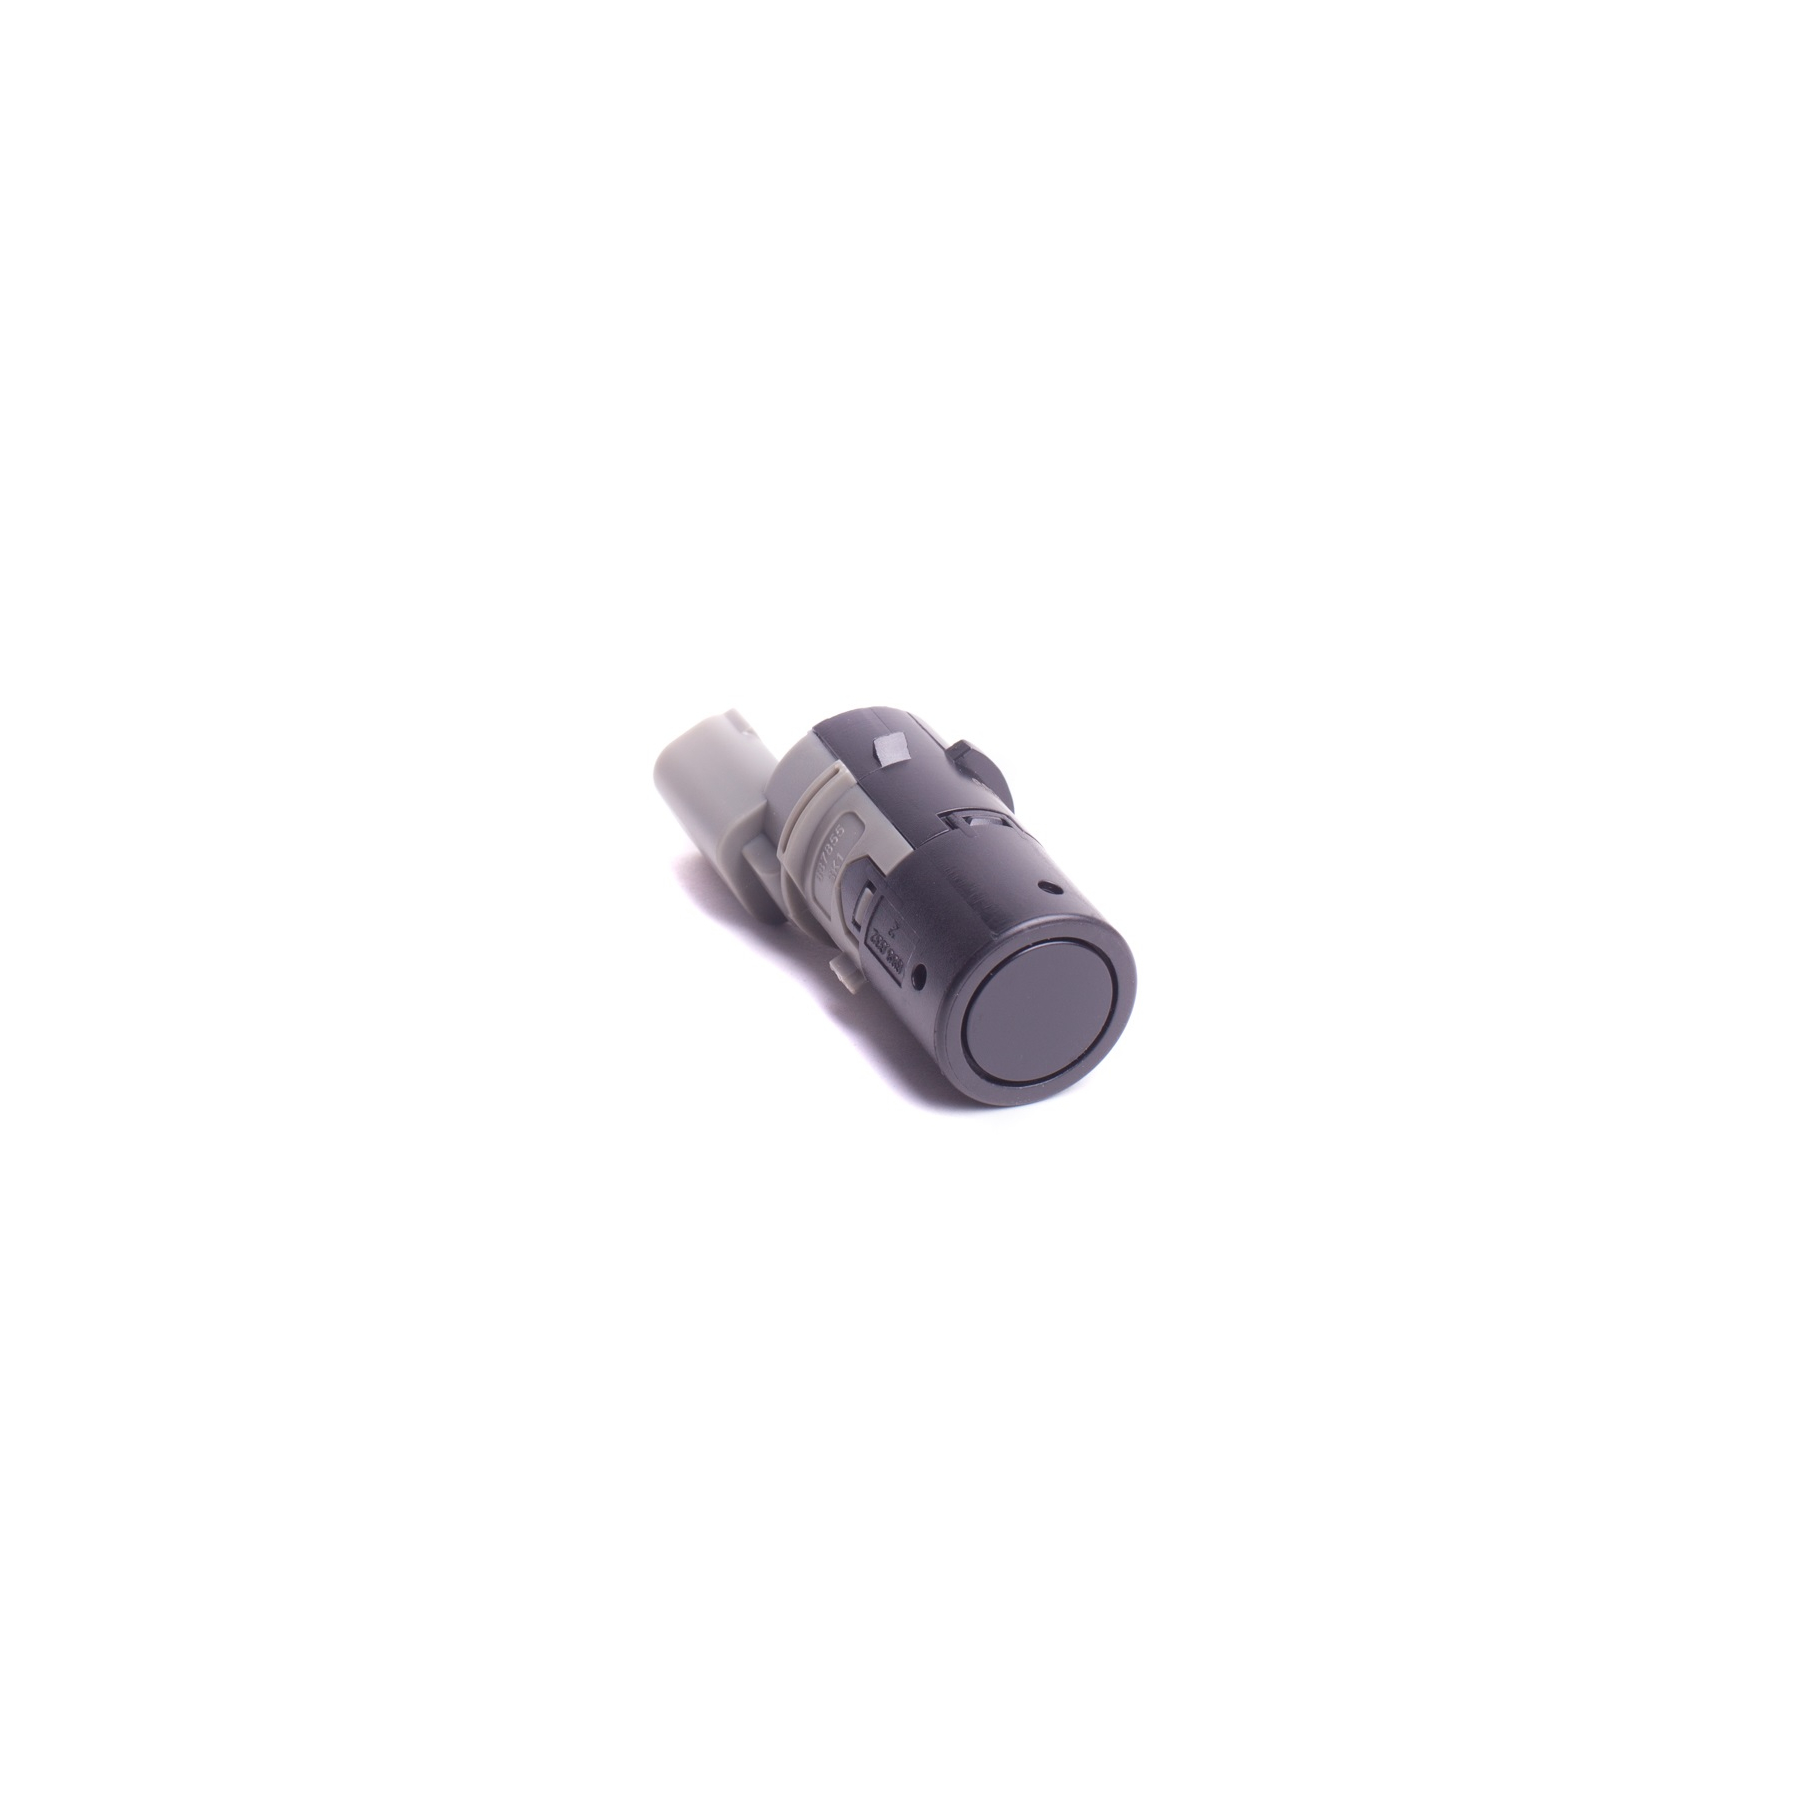 Parking sensor 66202184263 for BMW PDC Parktronic